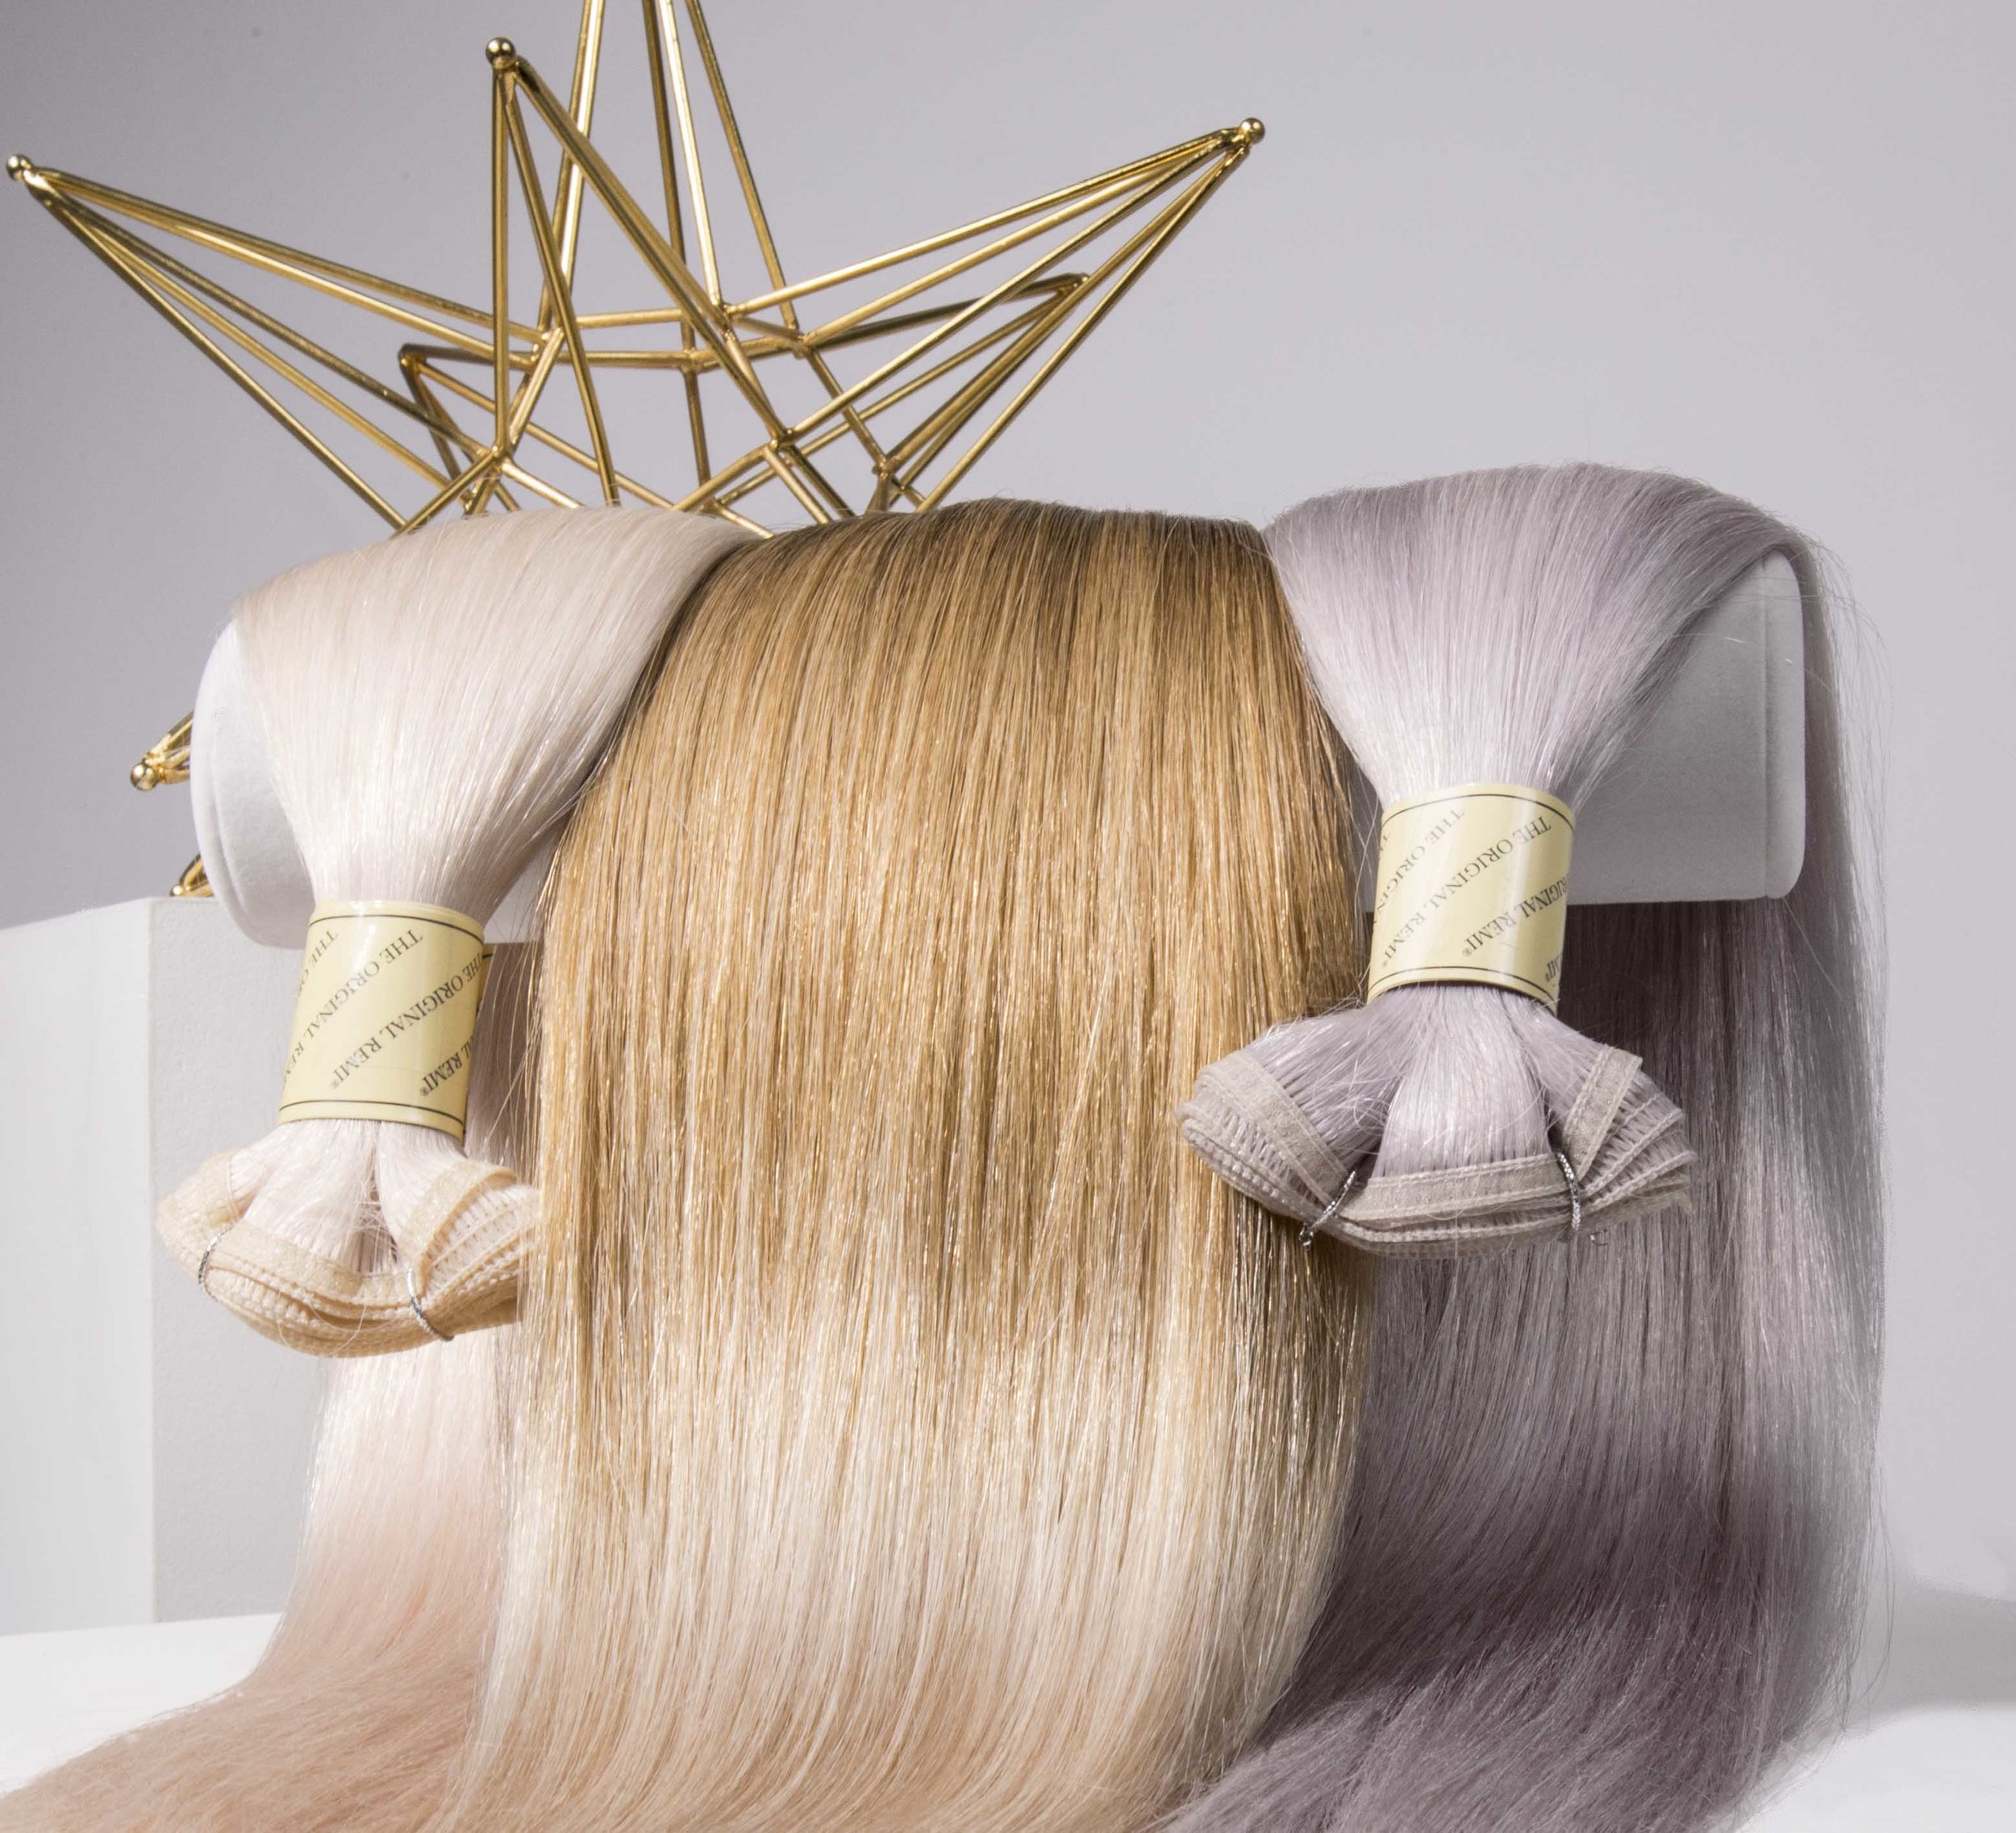 Extraordinary Flat Weft - The Bohyme® Seamless Weft™ is 30% thinner than our traditional wefts while still maintaining its exceptional strength and durability.With our innovative technology, we've eliminated the short return hair normally found along the top of traditional wefts that cause matting and irritation at the scalp. This allows the Bohyme® Seamless Weft™ to provide an exceedingly comfortable and natural fit.